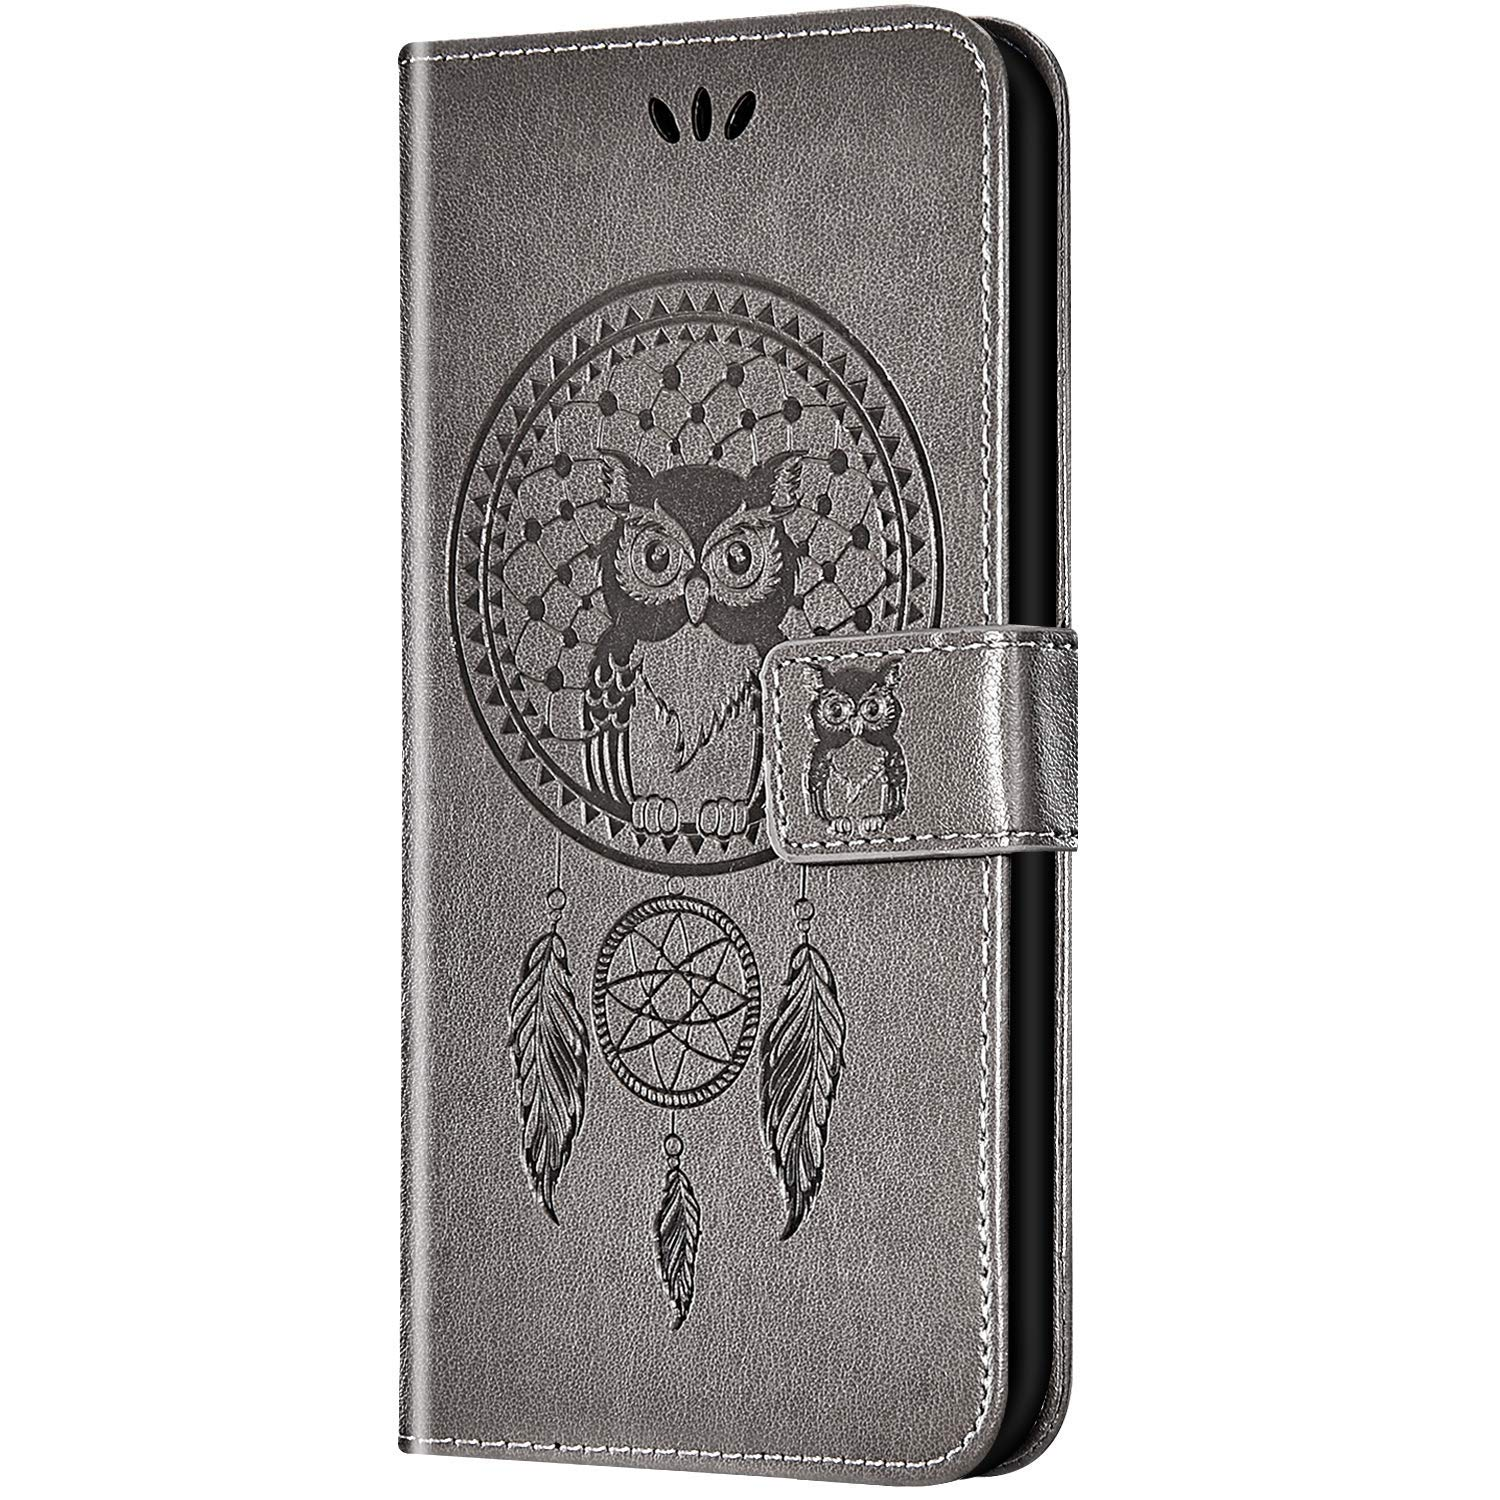 Case for Galaxy Note 9 Flip Case Ultra Slim PU Leather Wallet with Card Holder/Slot and Magnetic Closure Shockproof Cartoon Animal Owl Embossed Protective Cover for Galaxy Note 9,Gray by ikasus